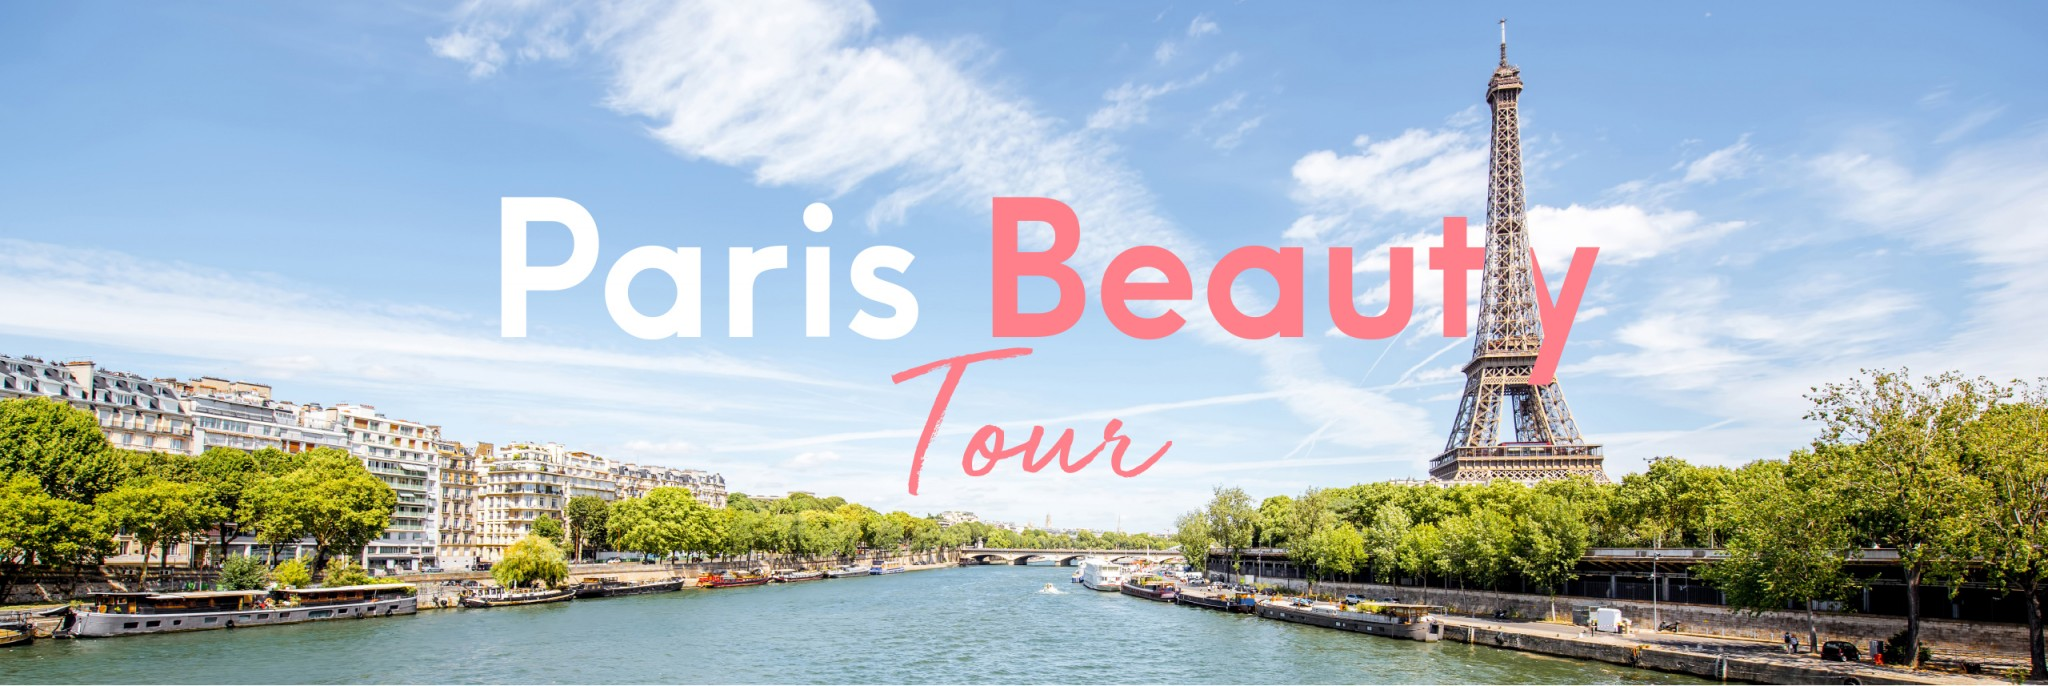 Paris_beauty_tour_header_002